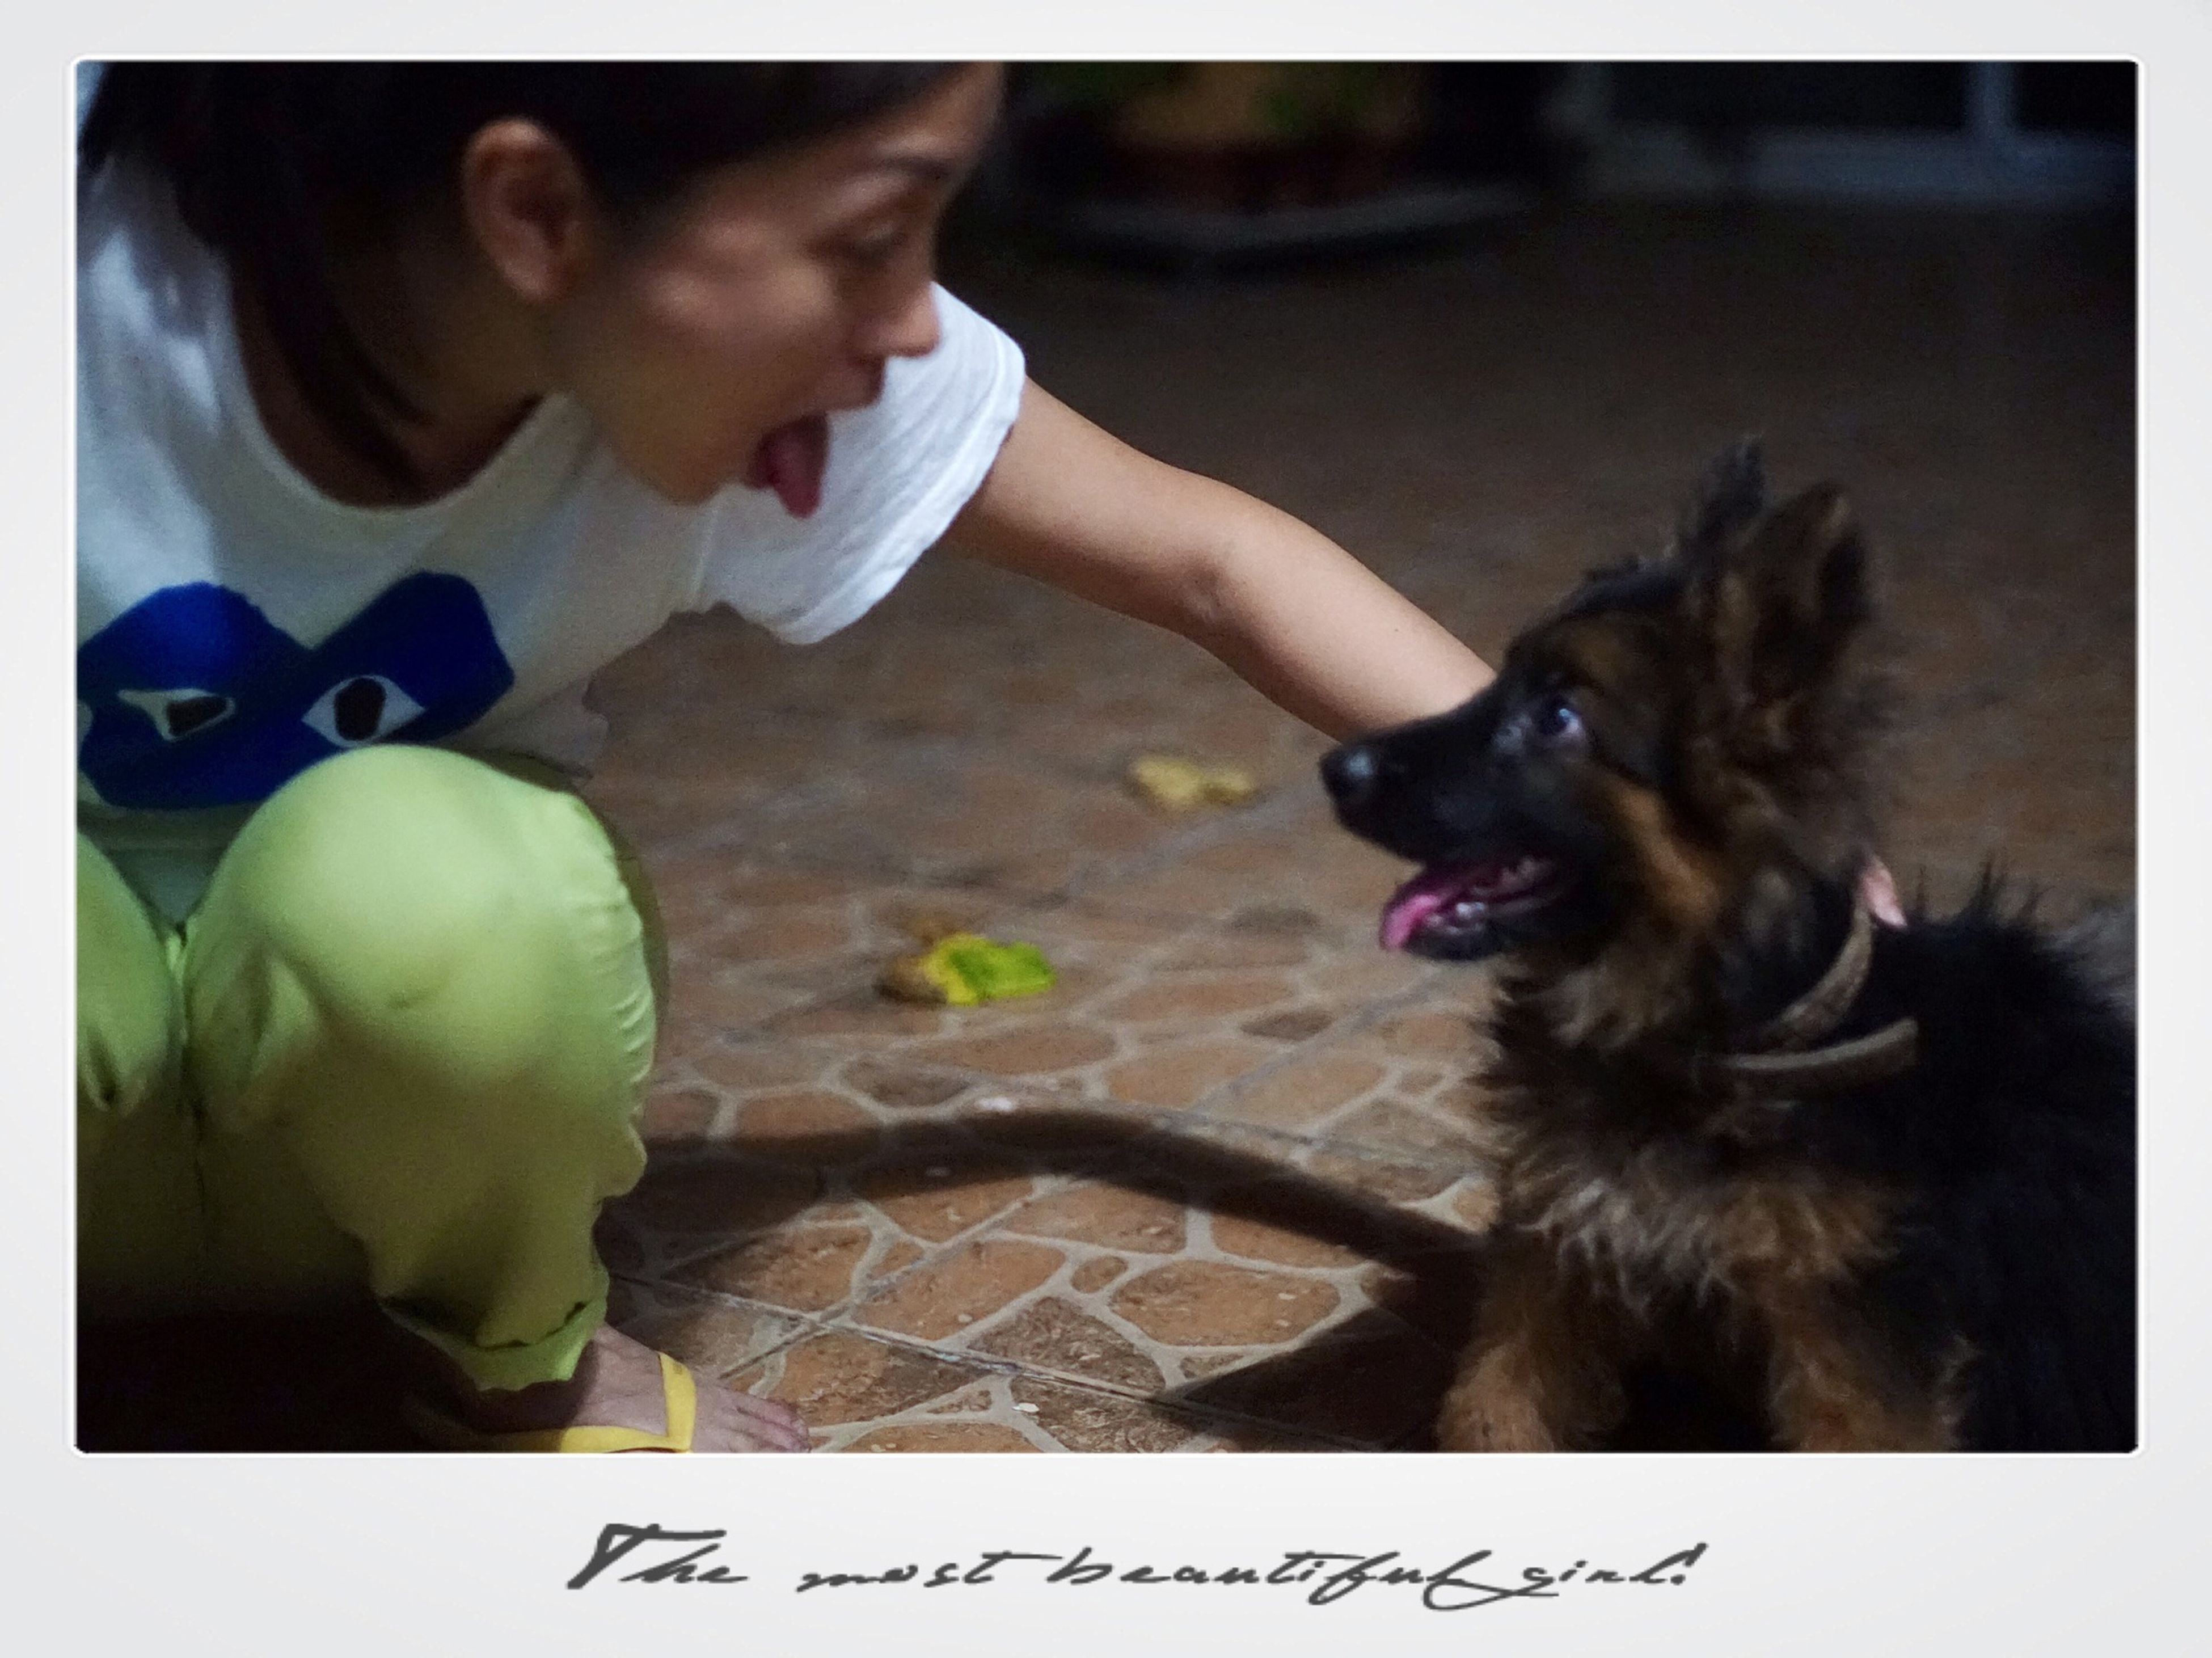 transfer print, auto post production filter, animal themes, pets, lifestyles, one animal, domestic animals, leisure activity, dog, person, holding, togetherness, playing, childhood, mammal, playful, pet owner, girls